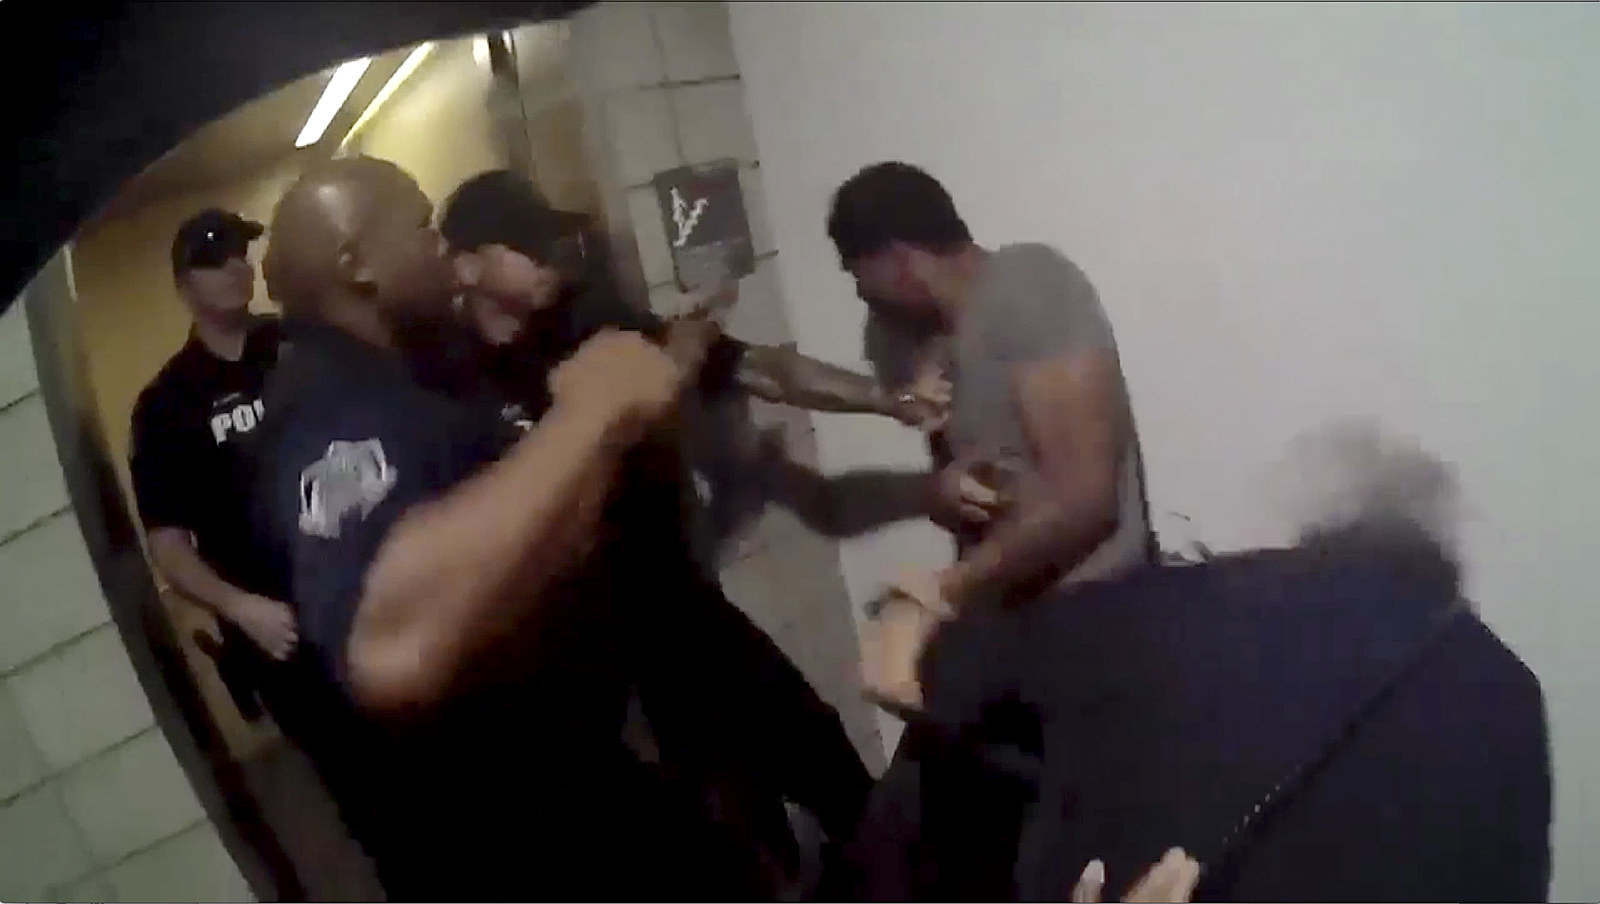 This Police Department Has A History Of Violent Incidents Caught On Video. Now The FBI Is Reviewing It.